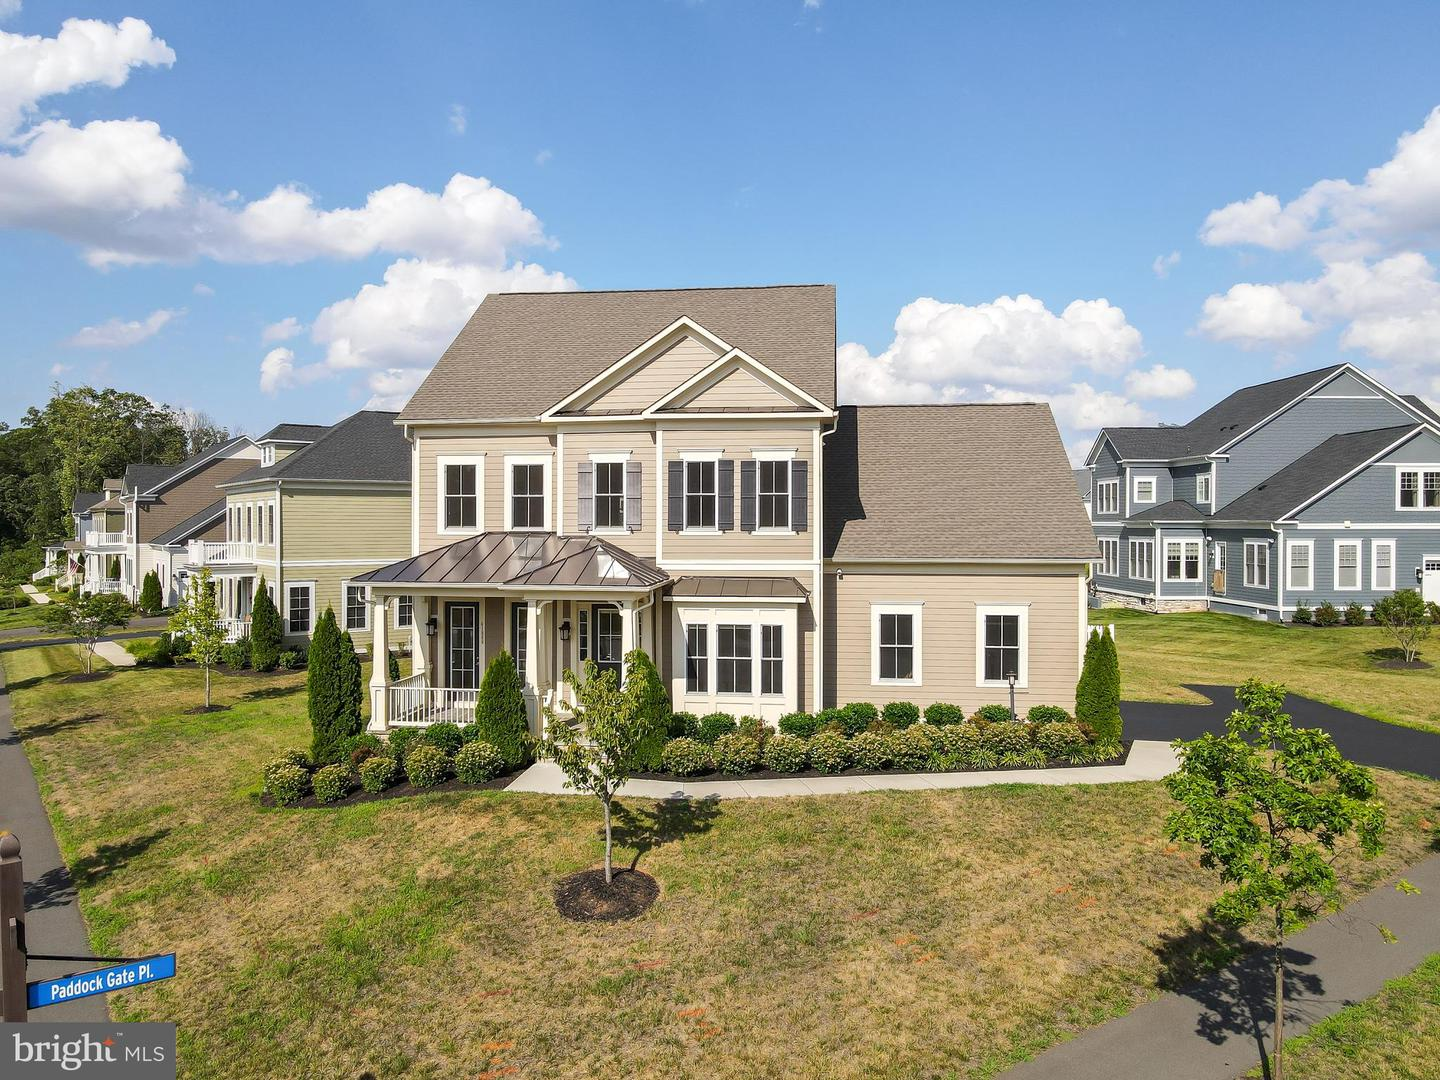 Photo of 41868 PADDOCK GATE PL, ASHBURN, VA 20148